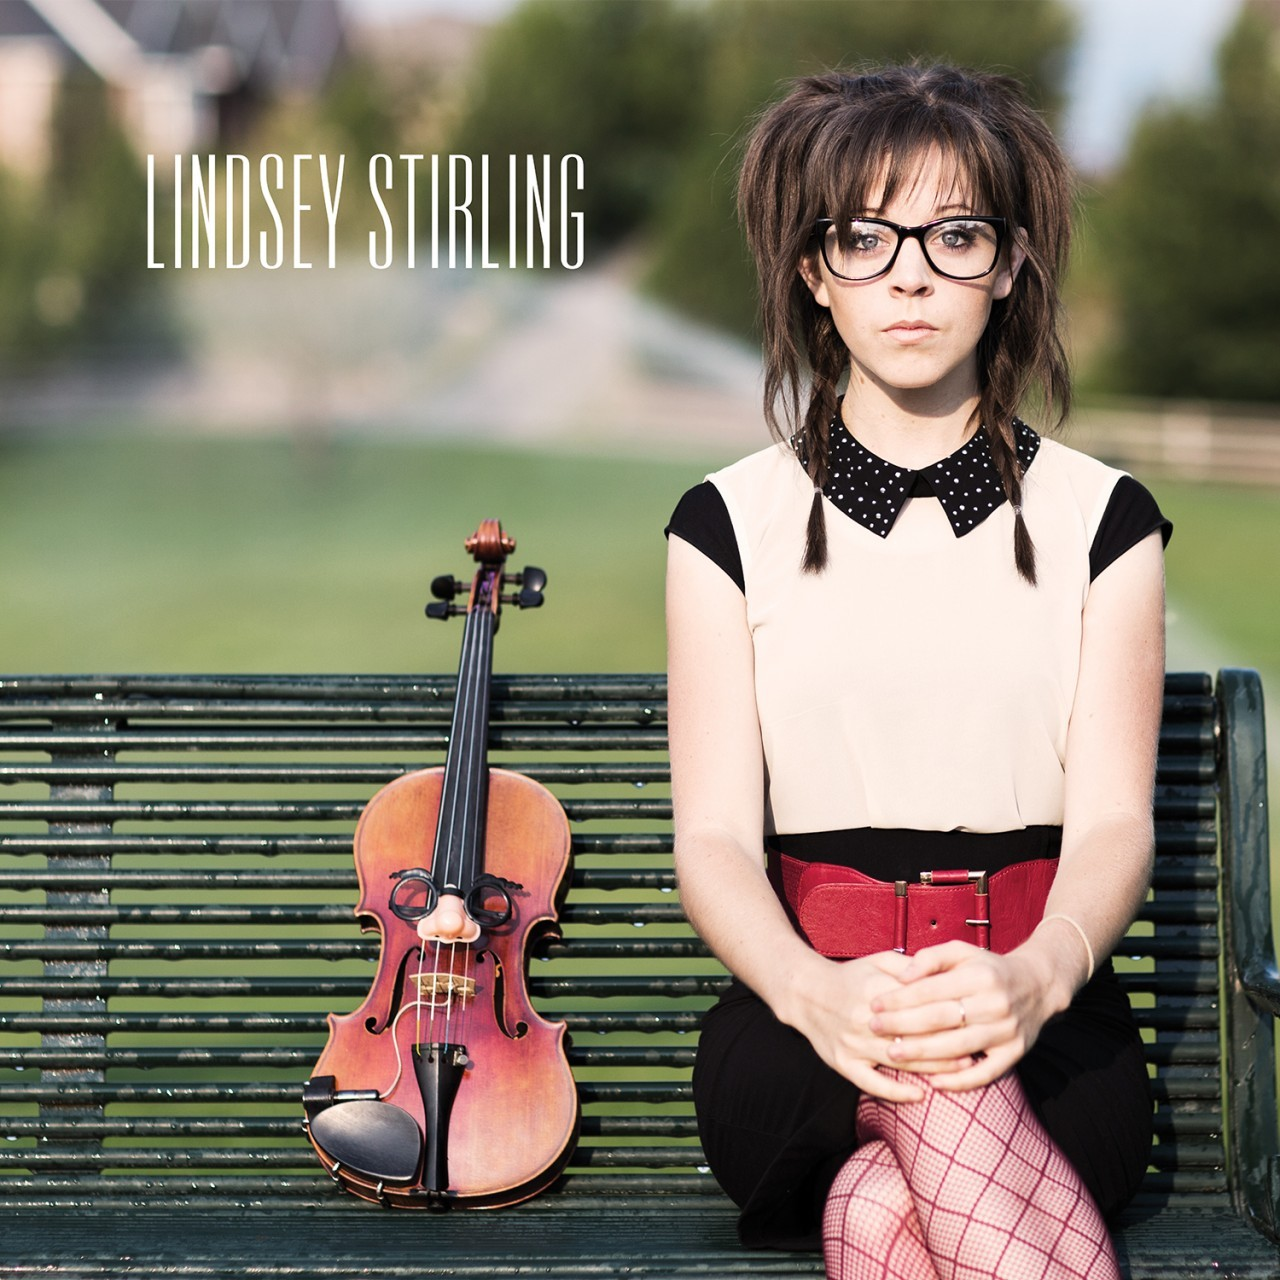 lindsey_stirling_album_art_rgb_medium__97740.1349483113.1280.1280.jpg